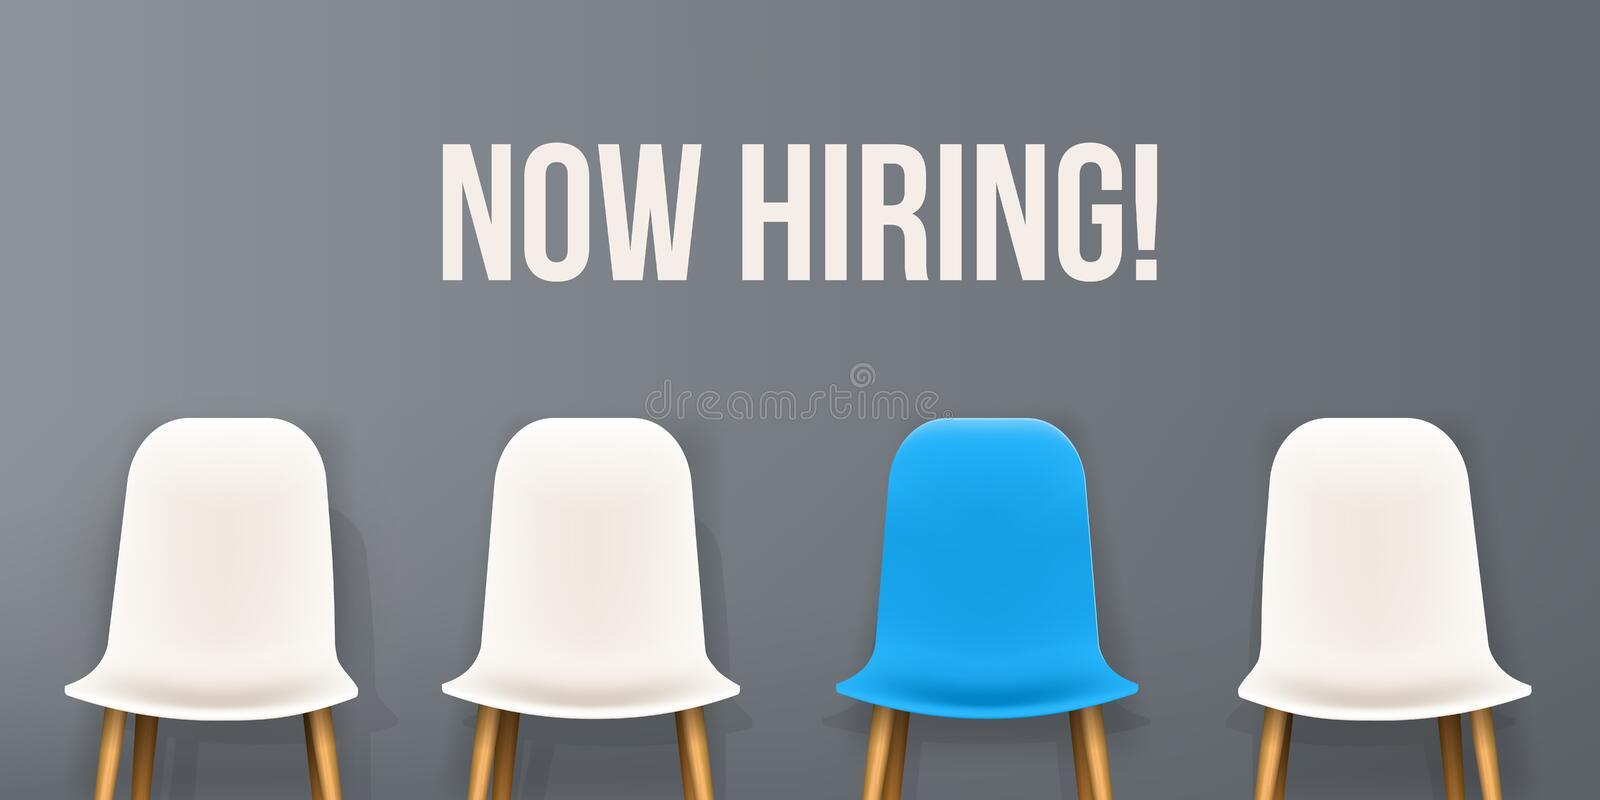 Creative vector illustration of we are hiring - recruiting concept, resources job employment career jobless interview. Chairs isolated on background. Art royalty free illustration